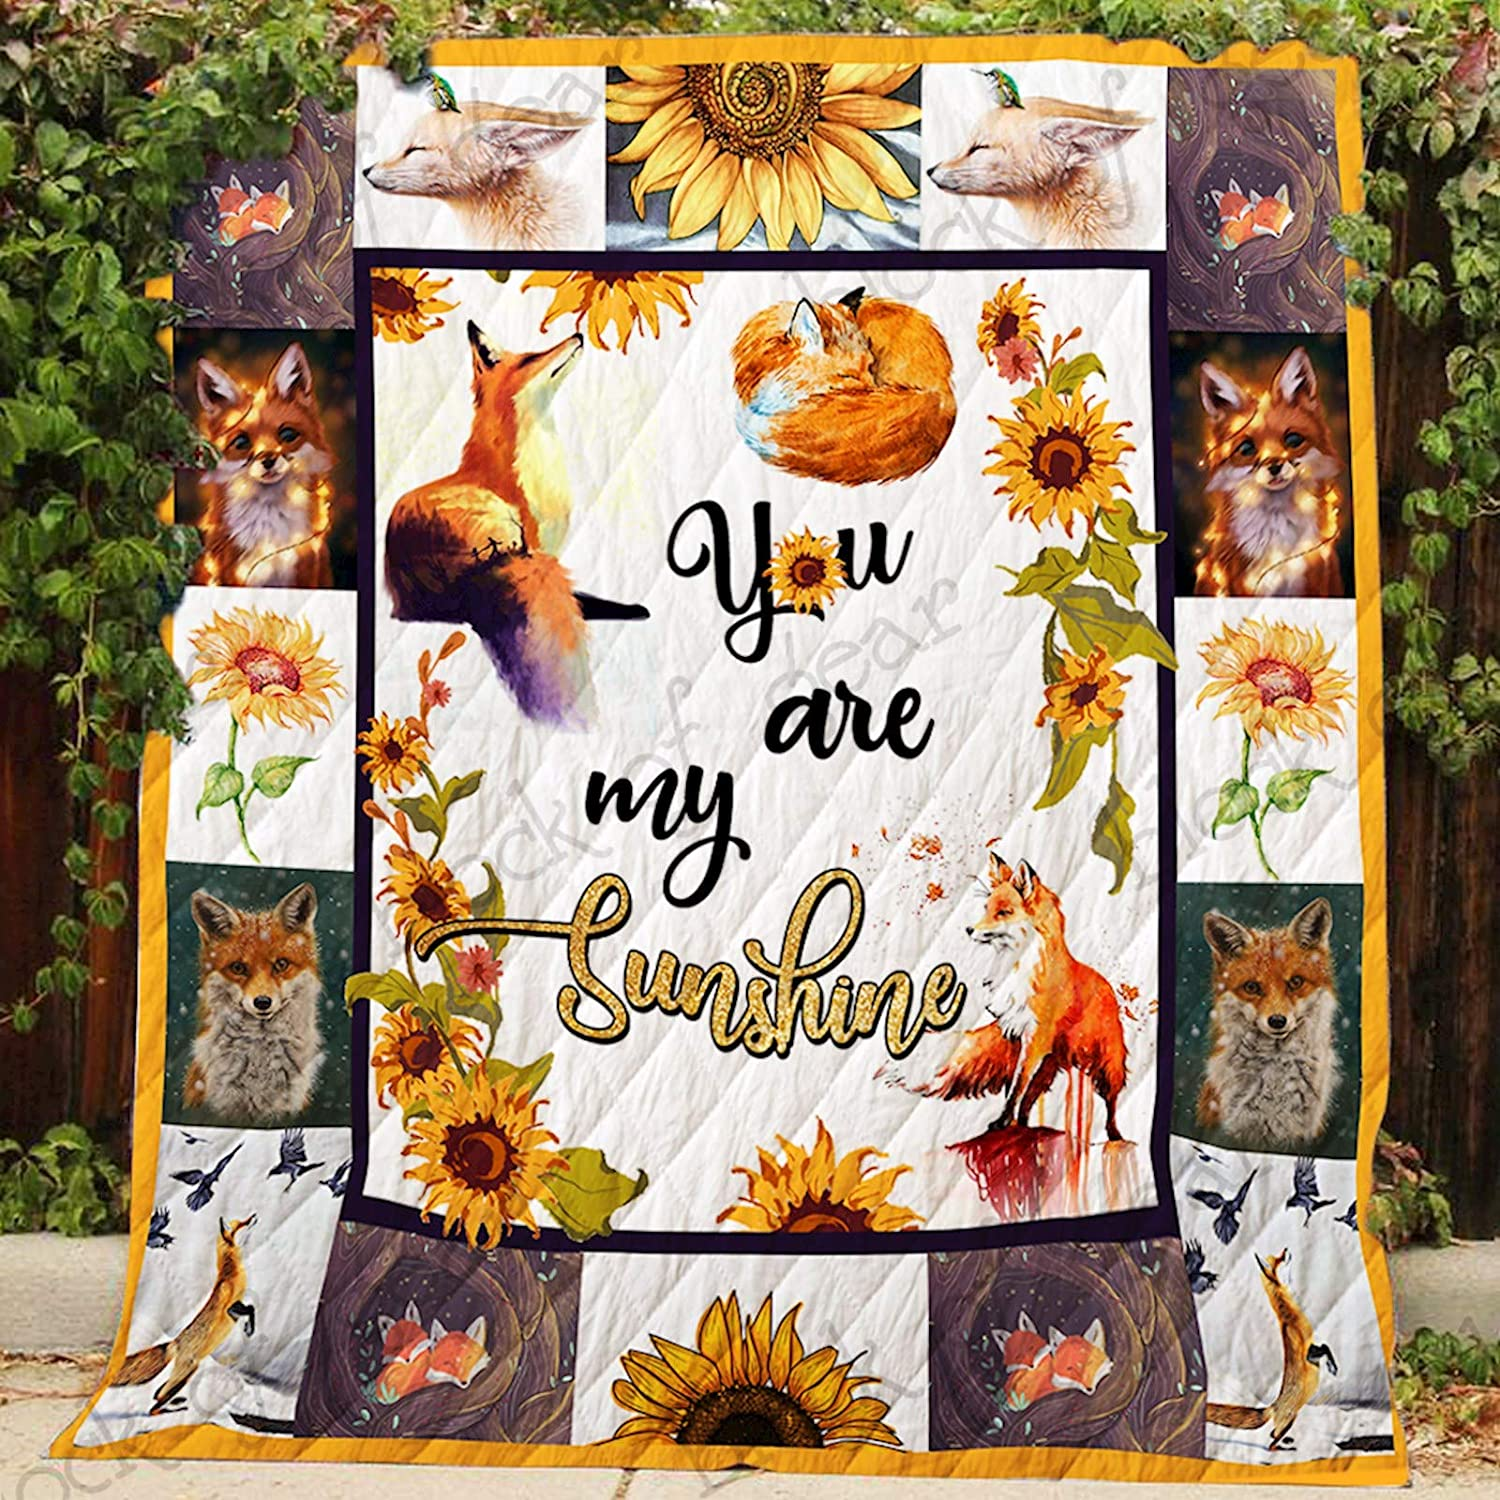 You are My Sunshine Fox Quilt P350, Queen All-Season Quilts Comforters with Reversible Cotton King Queen Twin Size - Best Decorative Quilts-Unique Quilted for Gifts